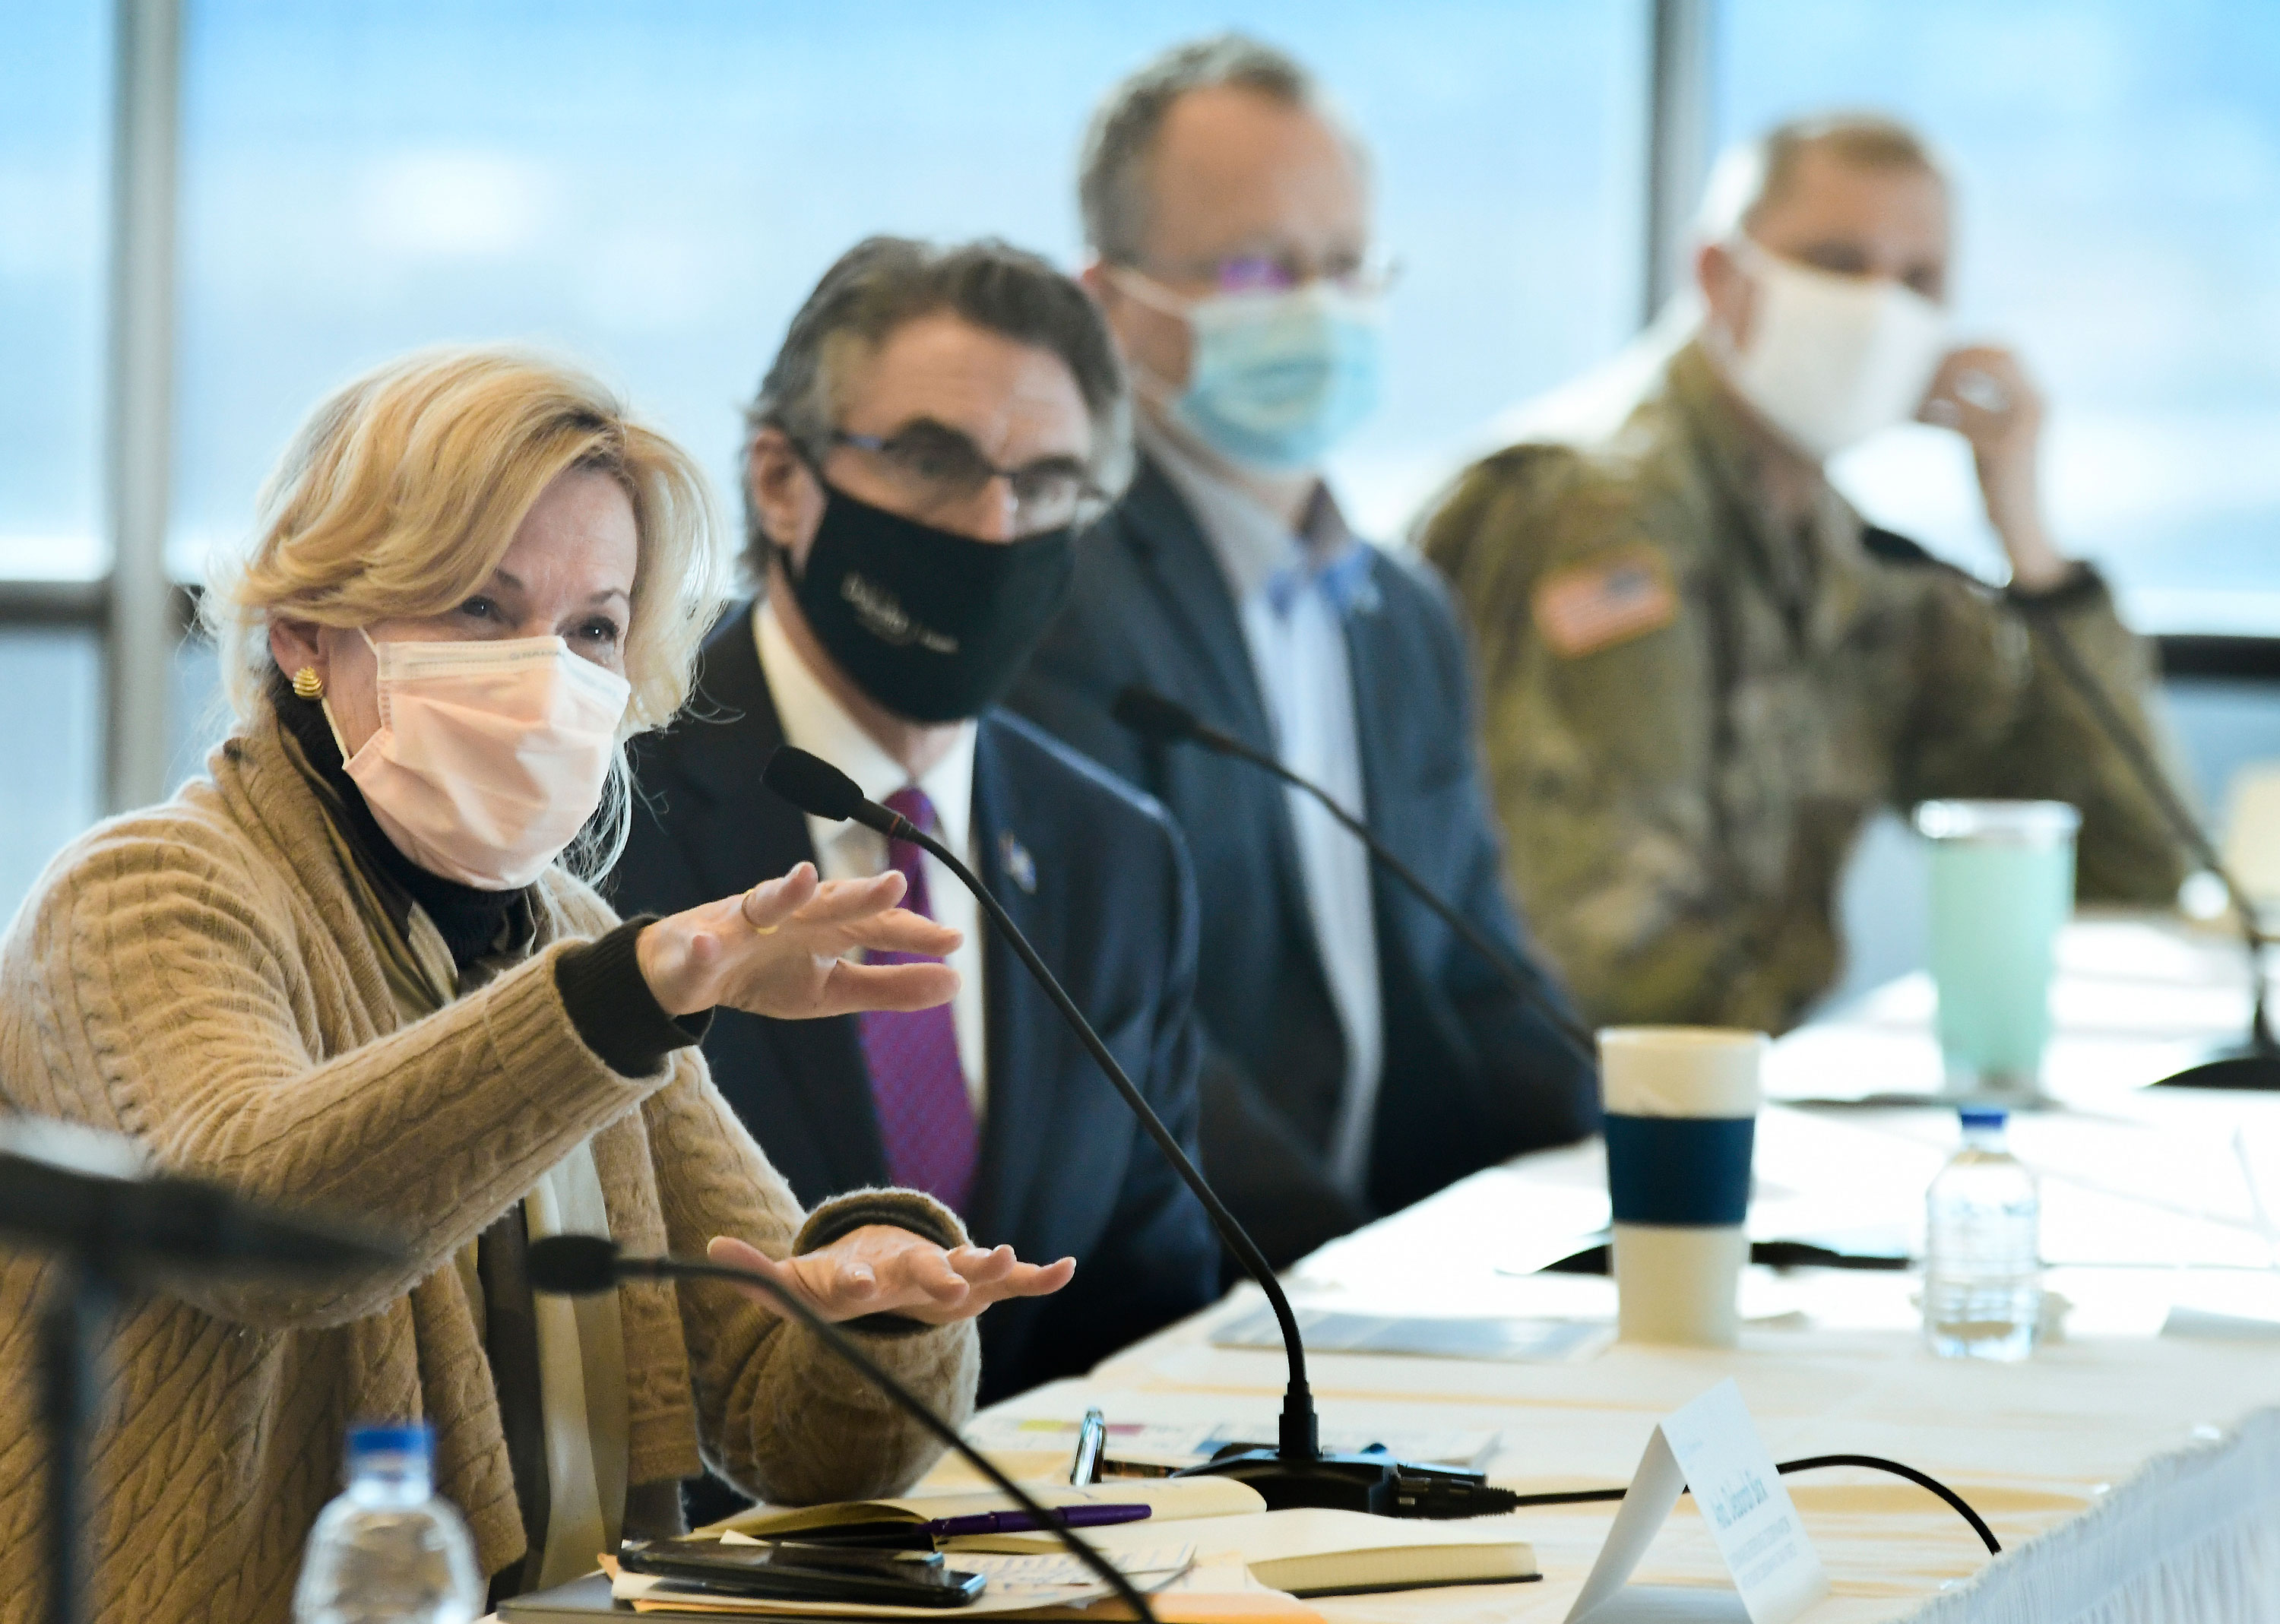 Dr. Birx slams the lack of mask usage in North Dakota, where Covid-19 is soaring